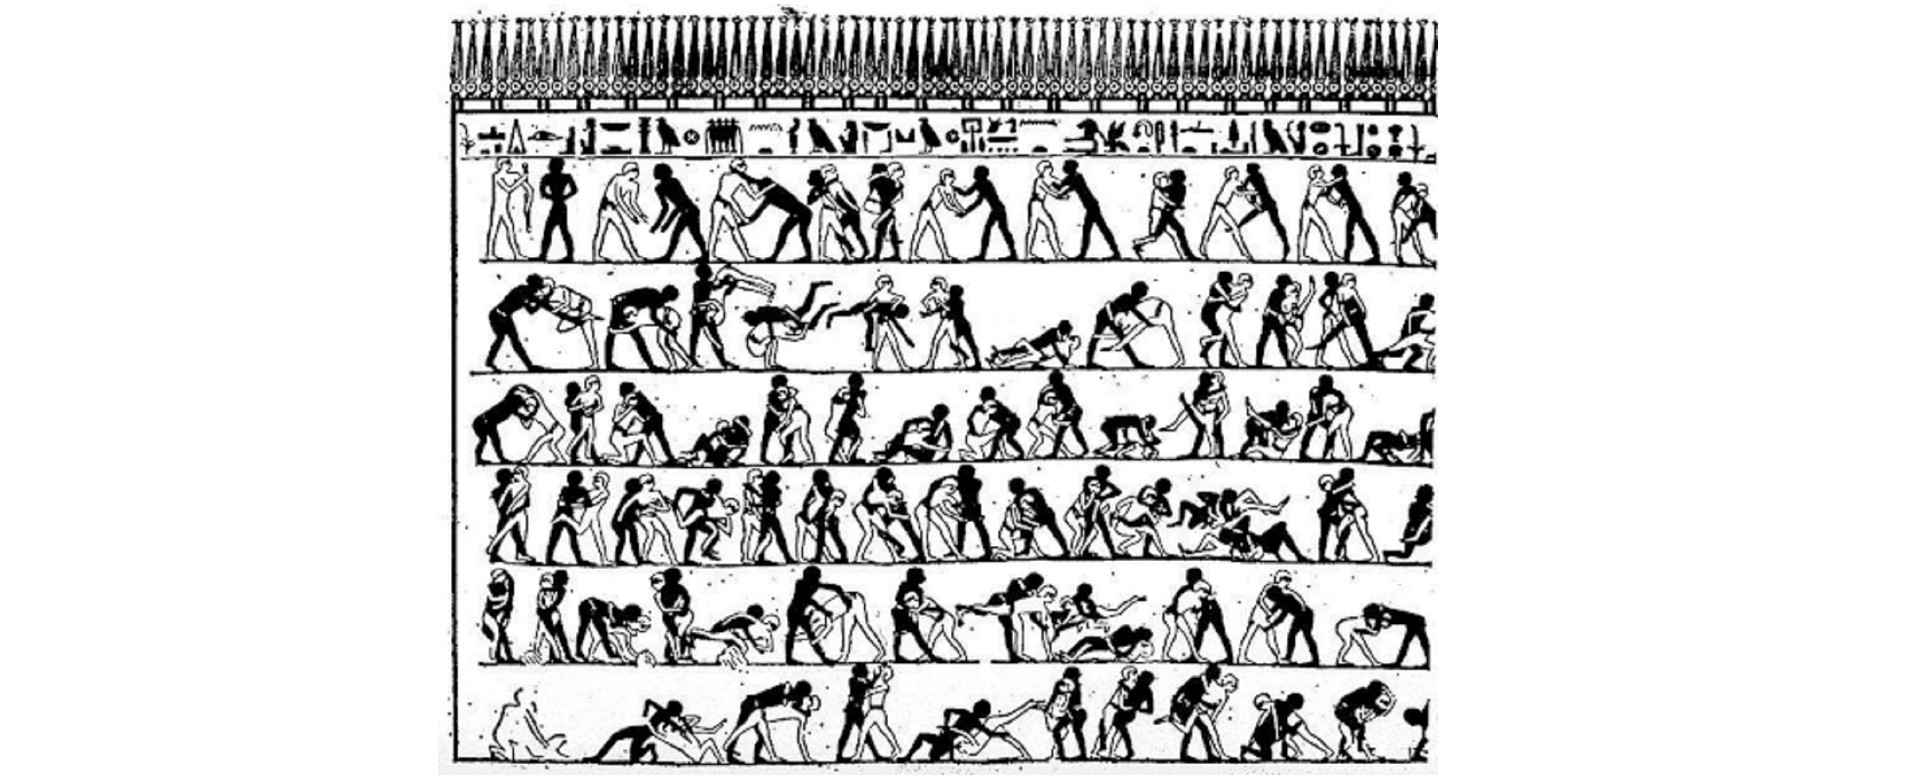 Egyptian mural in an article on the History of Animation